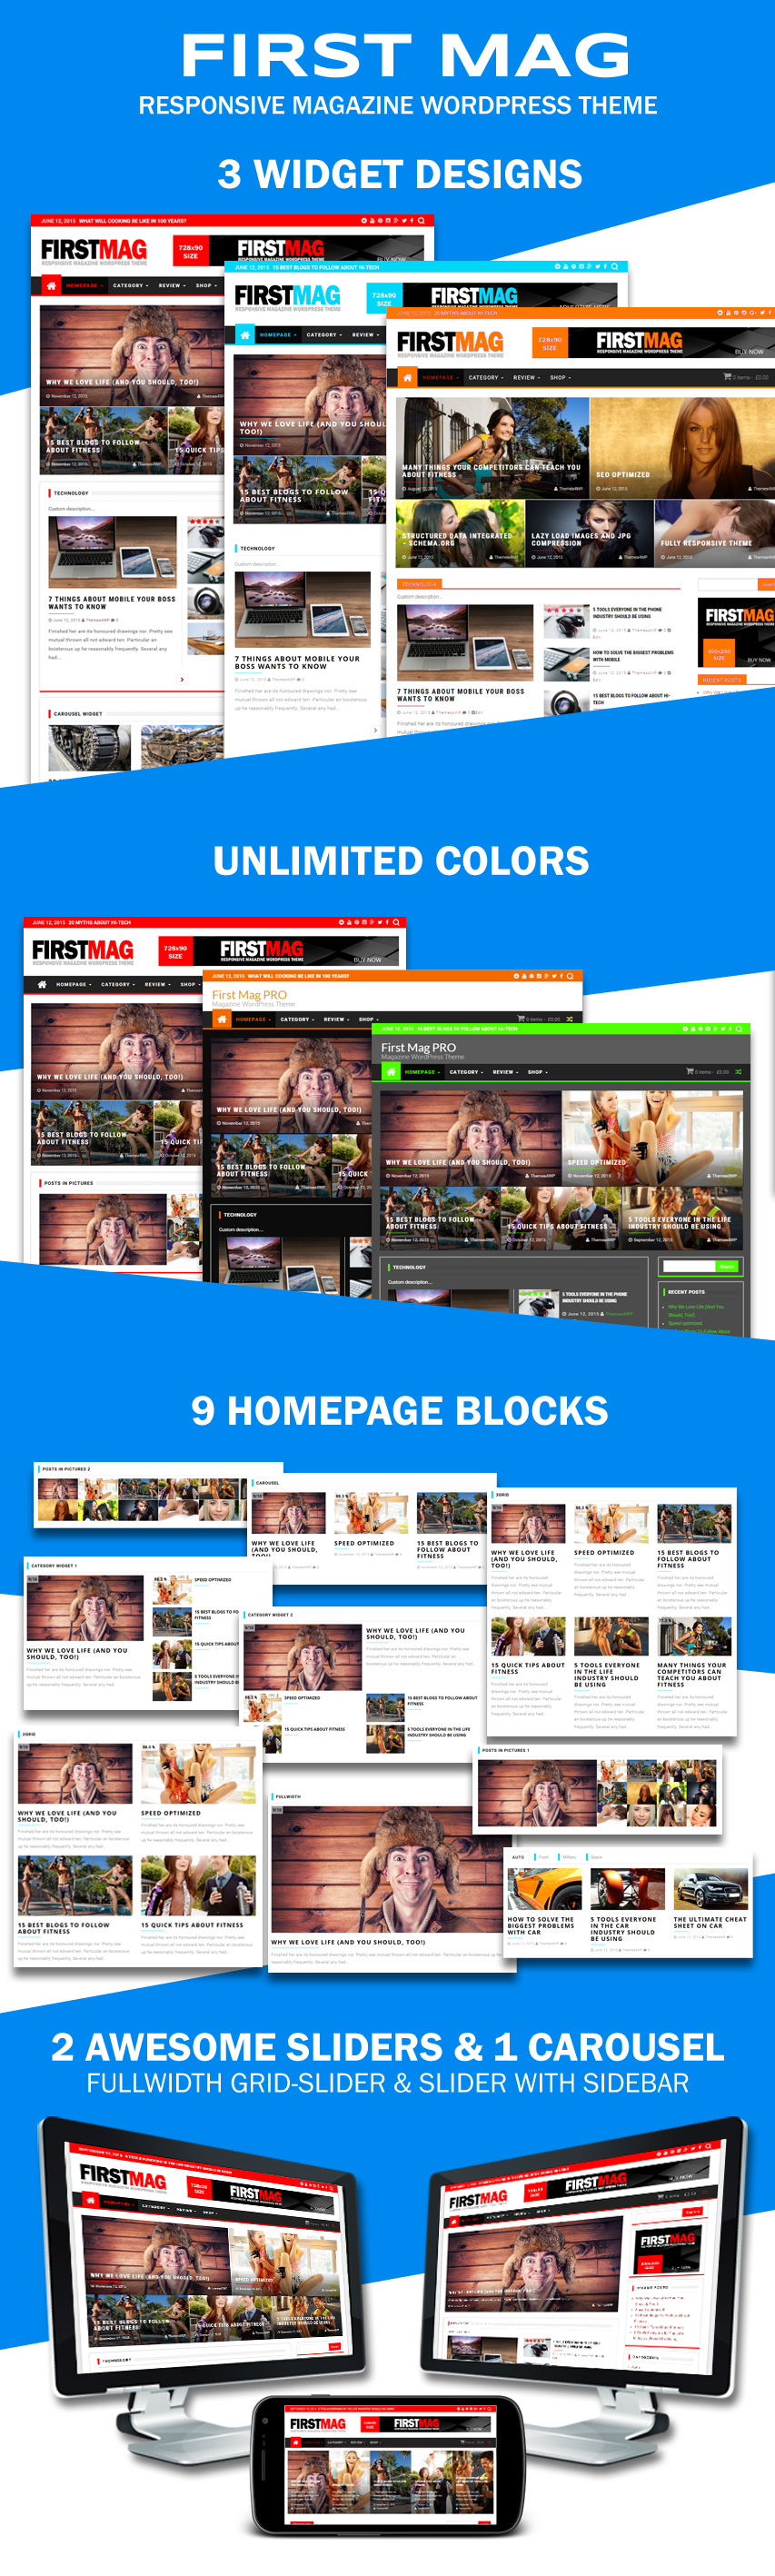 firstmag-pro-magazine-wordpress-theme